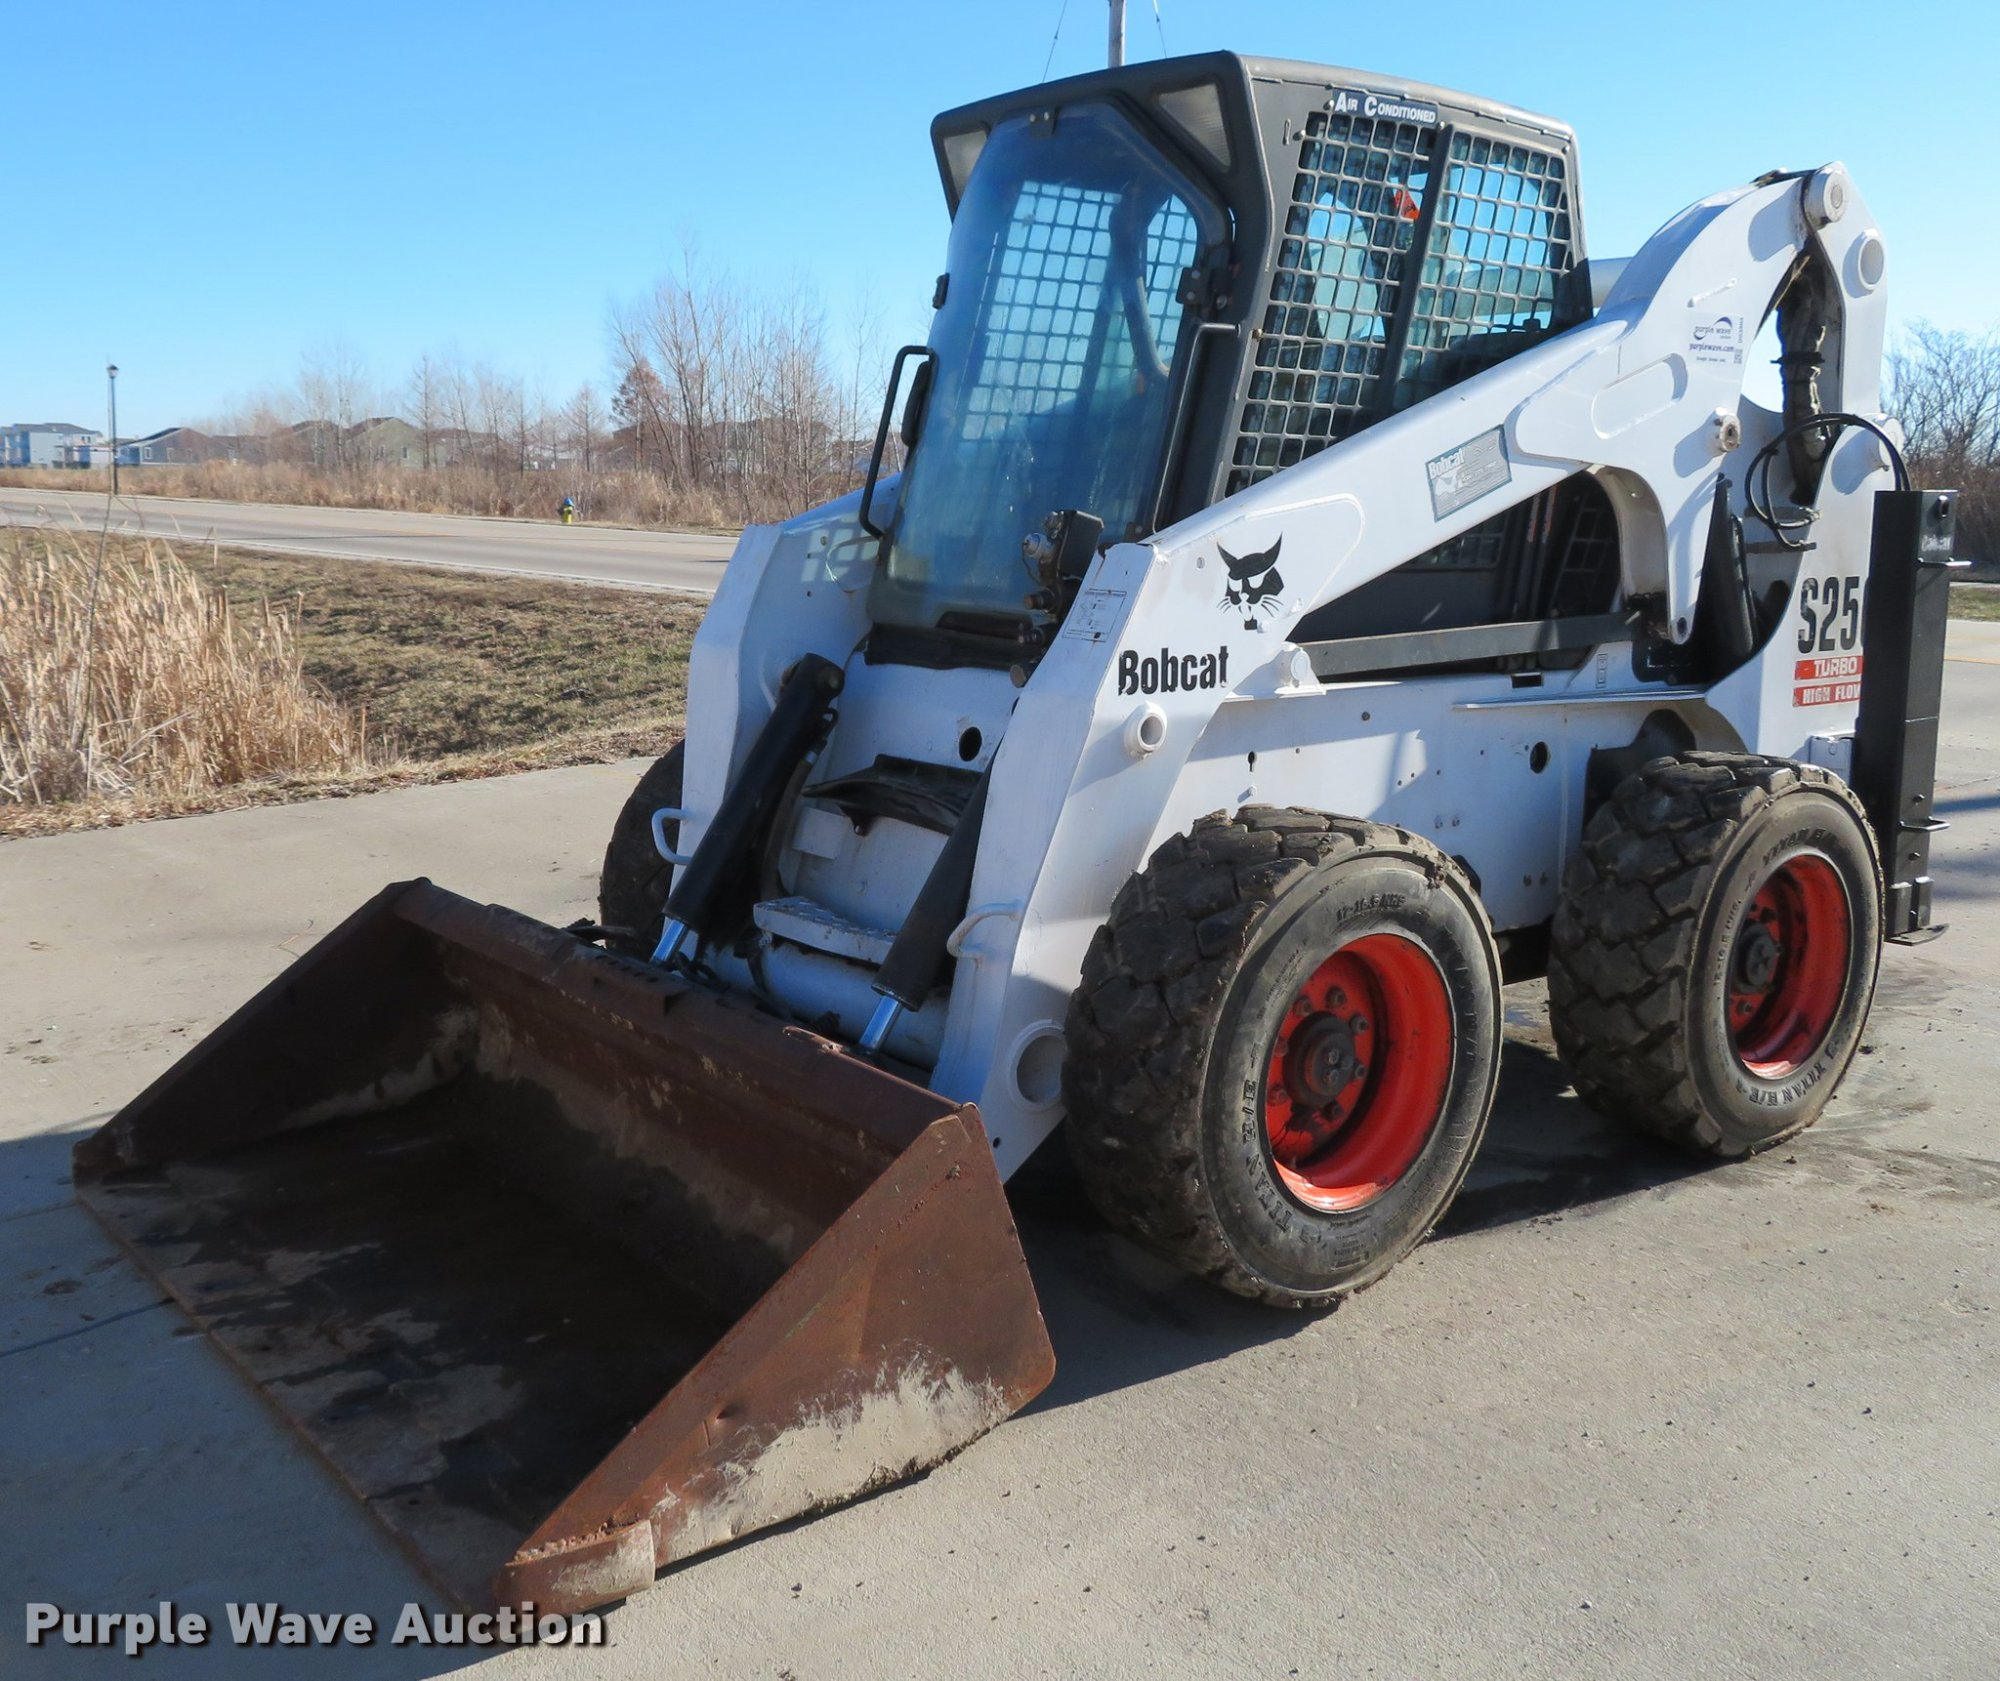 hight resolution of 2003 bobcat s250 skid steer for sale in missouri